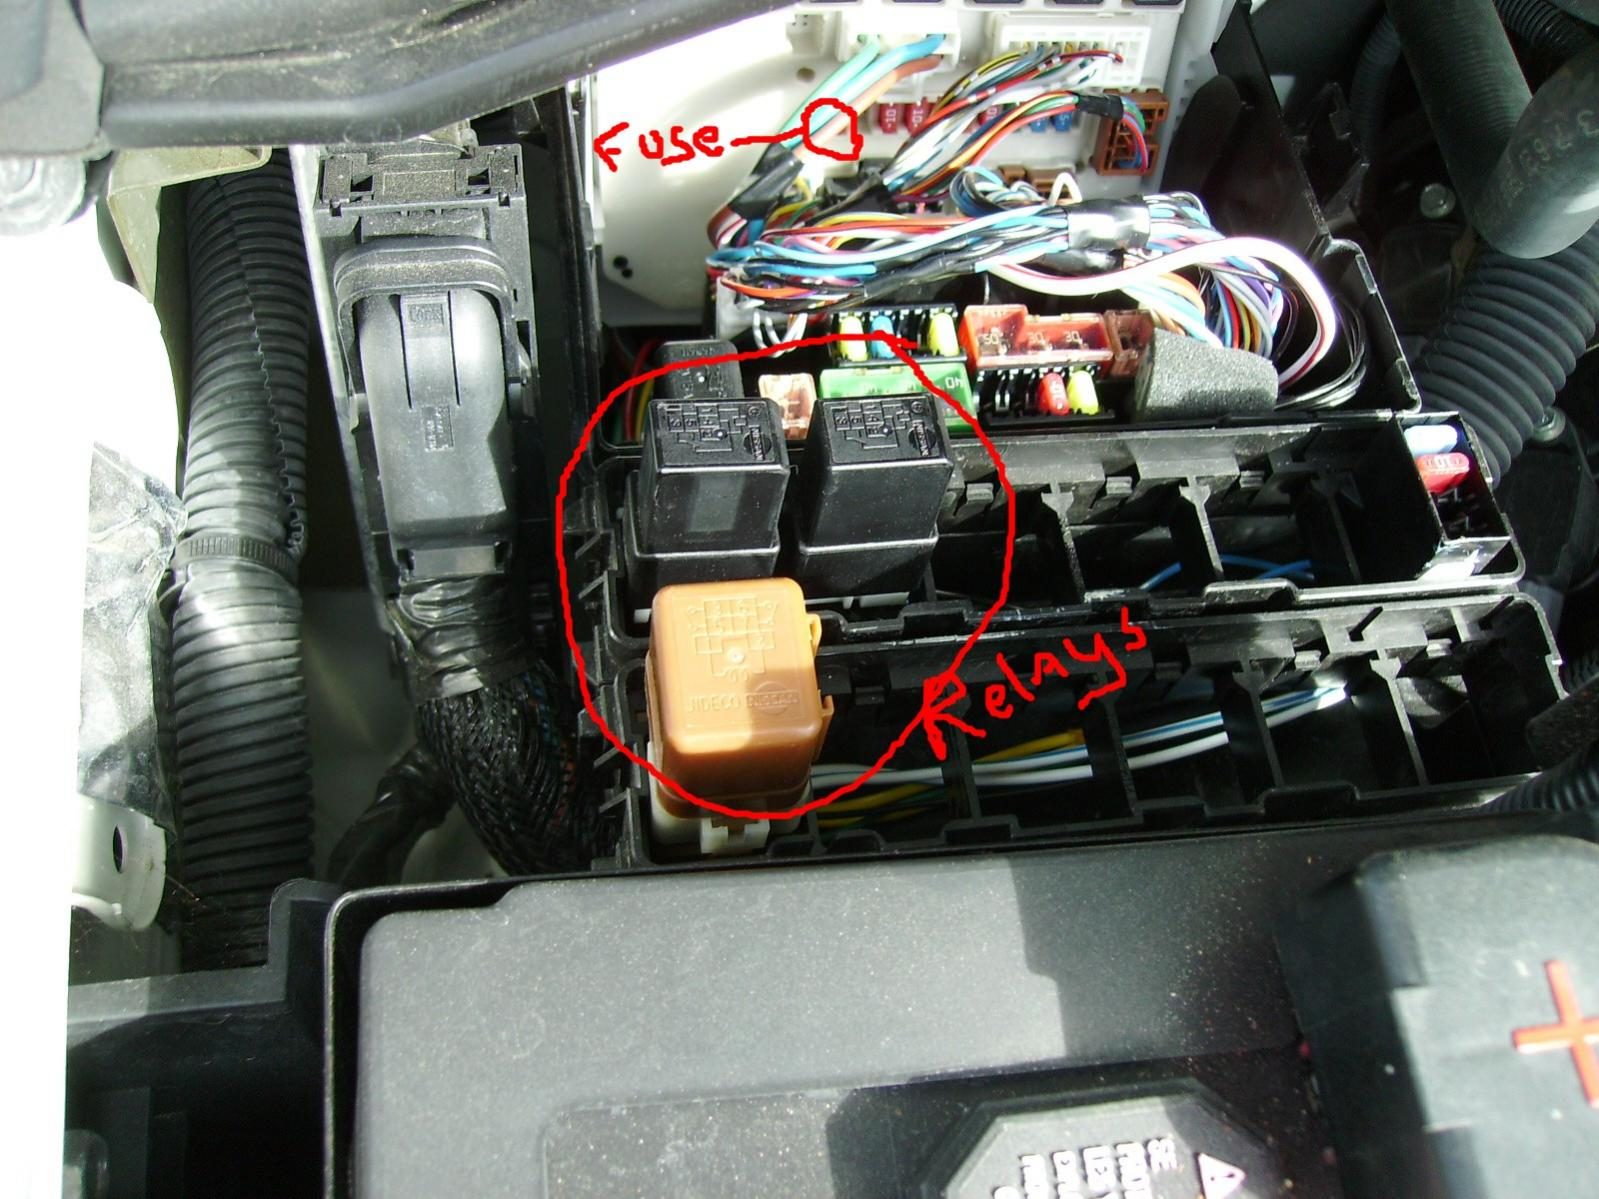 79313d1241634593 2008 only 1 tow relay please help asap pict0004 tail lights license plate lights not working nissan forum Under Hood Fuse Box Diagram at honlapkeszites.co